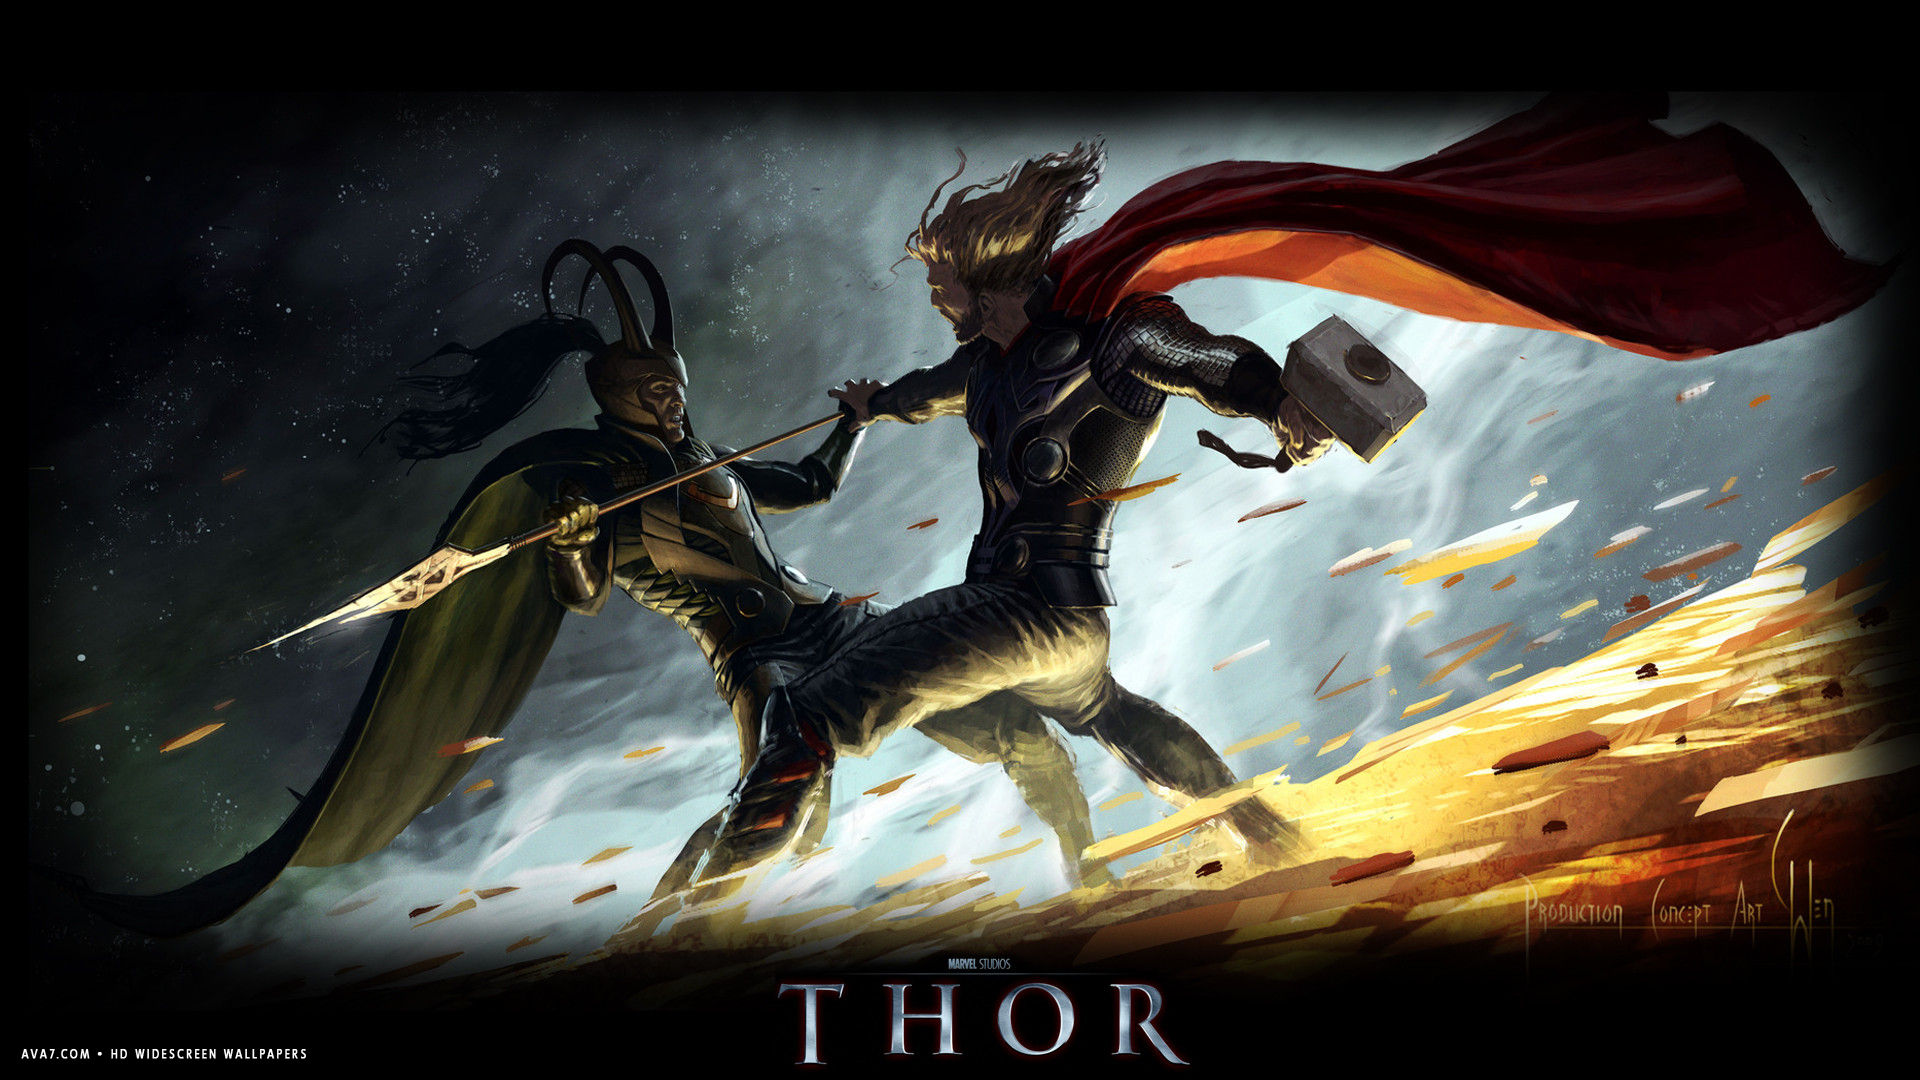 Thor Movie Hd Widescreen Wallpaper Movies Backgrounds